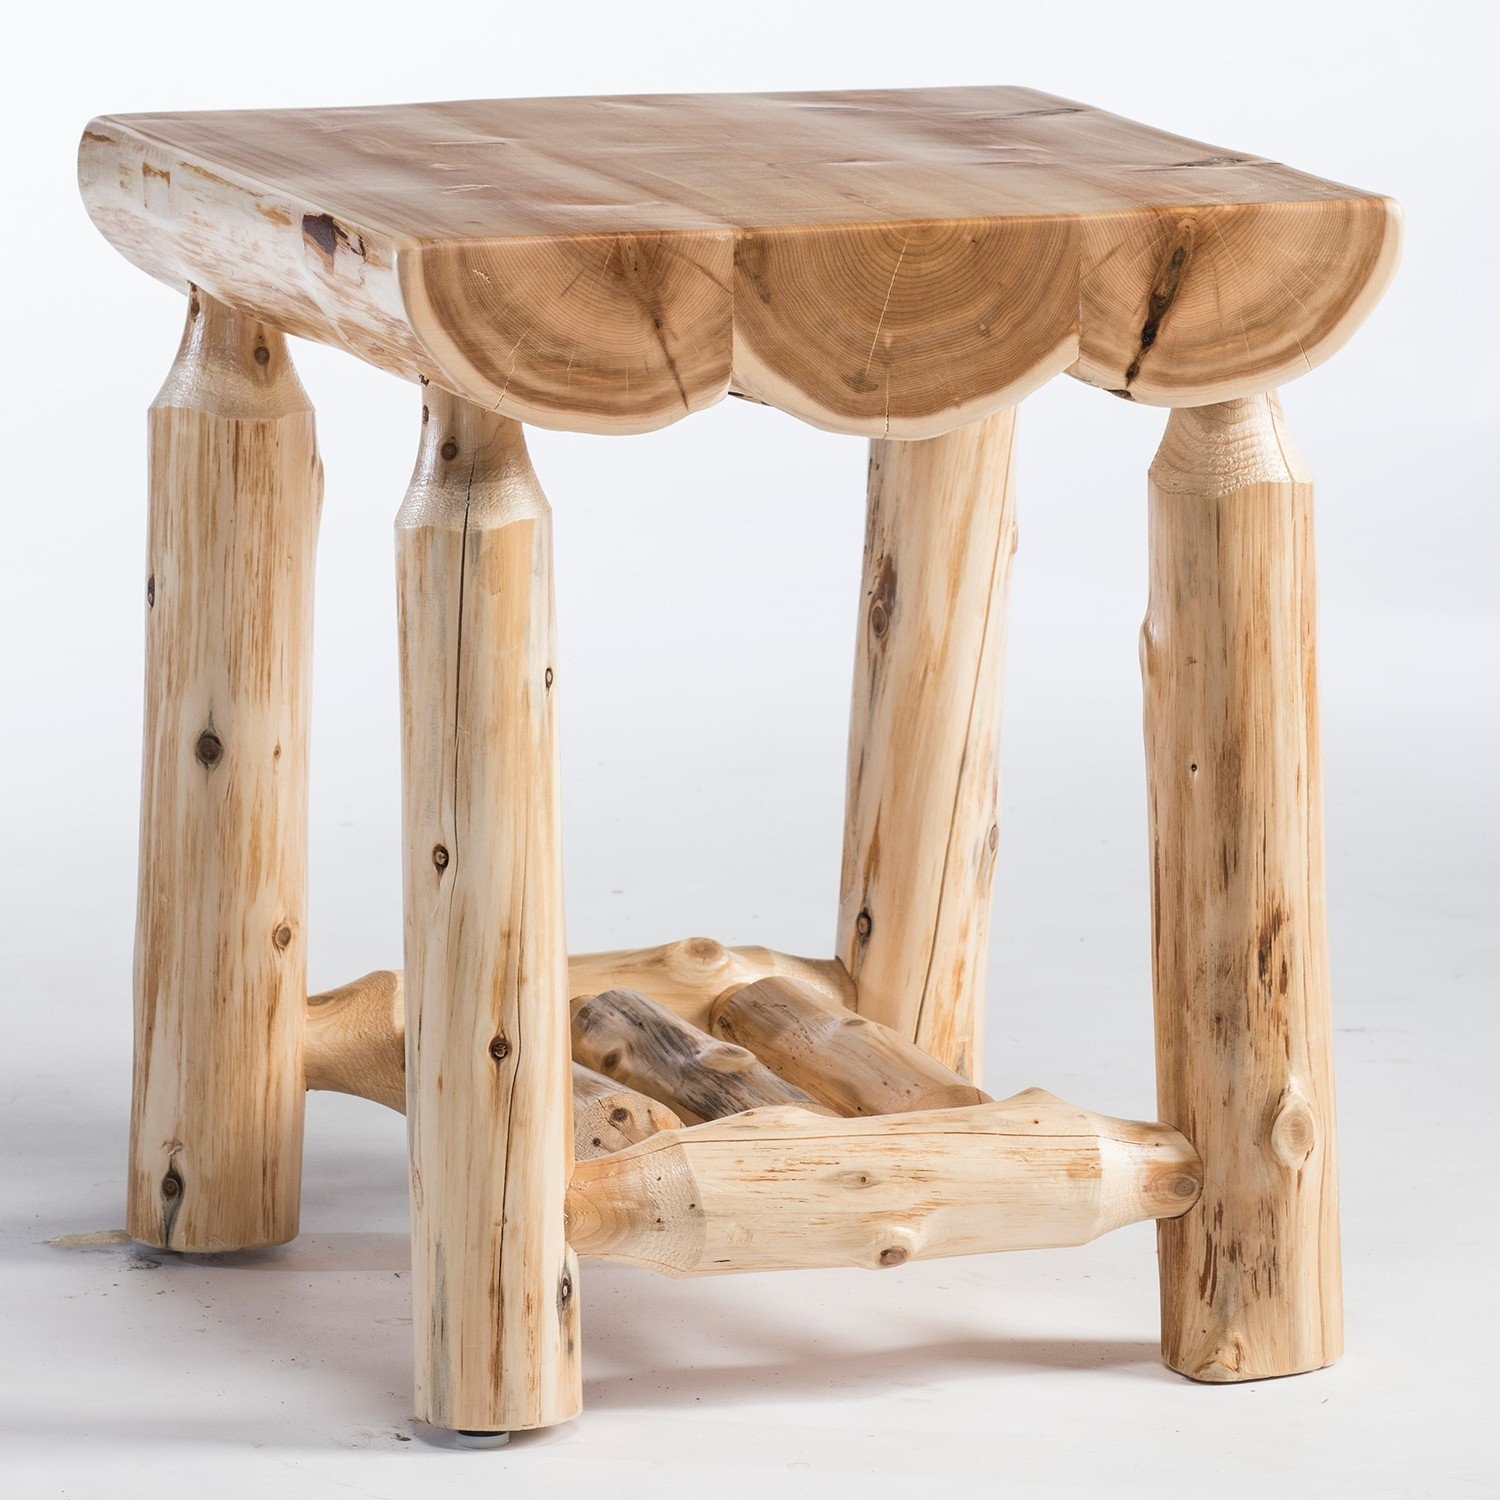 rustic western and country end tables log whole corner accent table cedar lake half dorm room outdoor side beverage cooler chair drop leaf with folding chairs metal garden